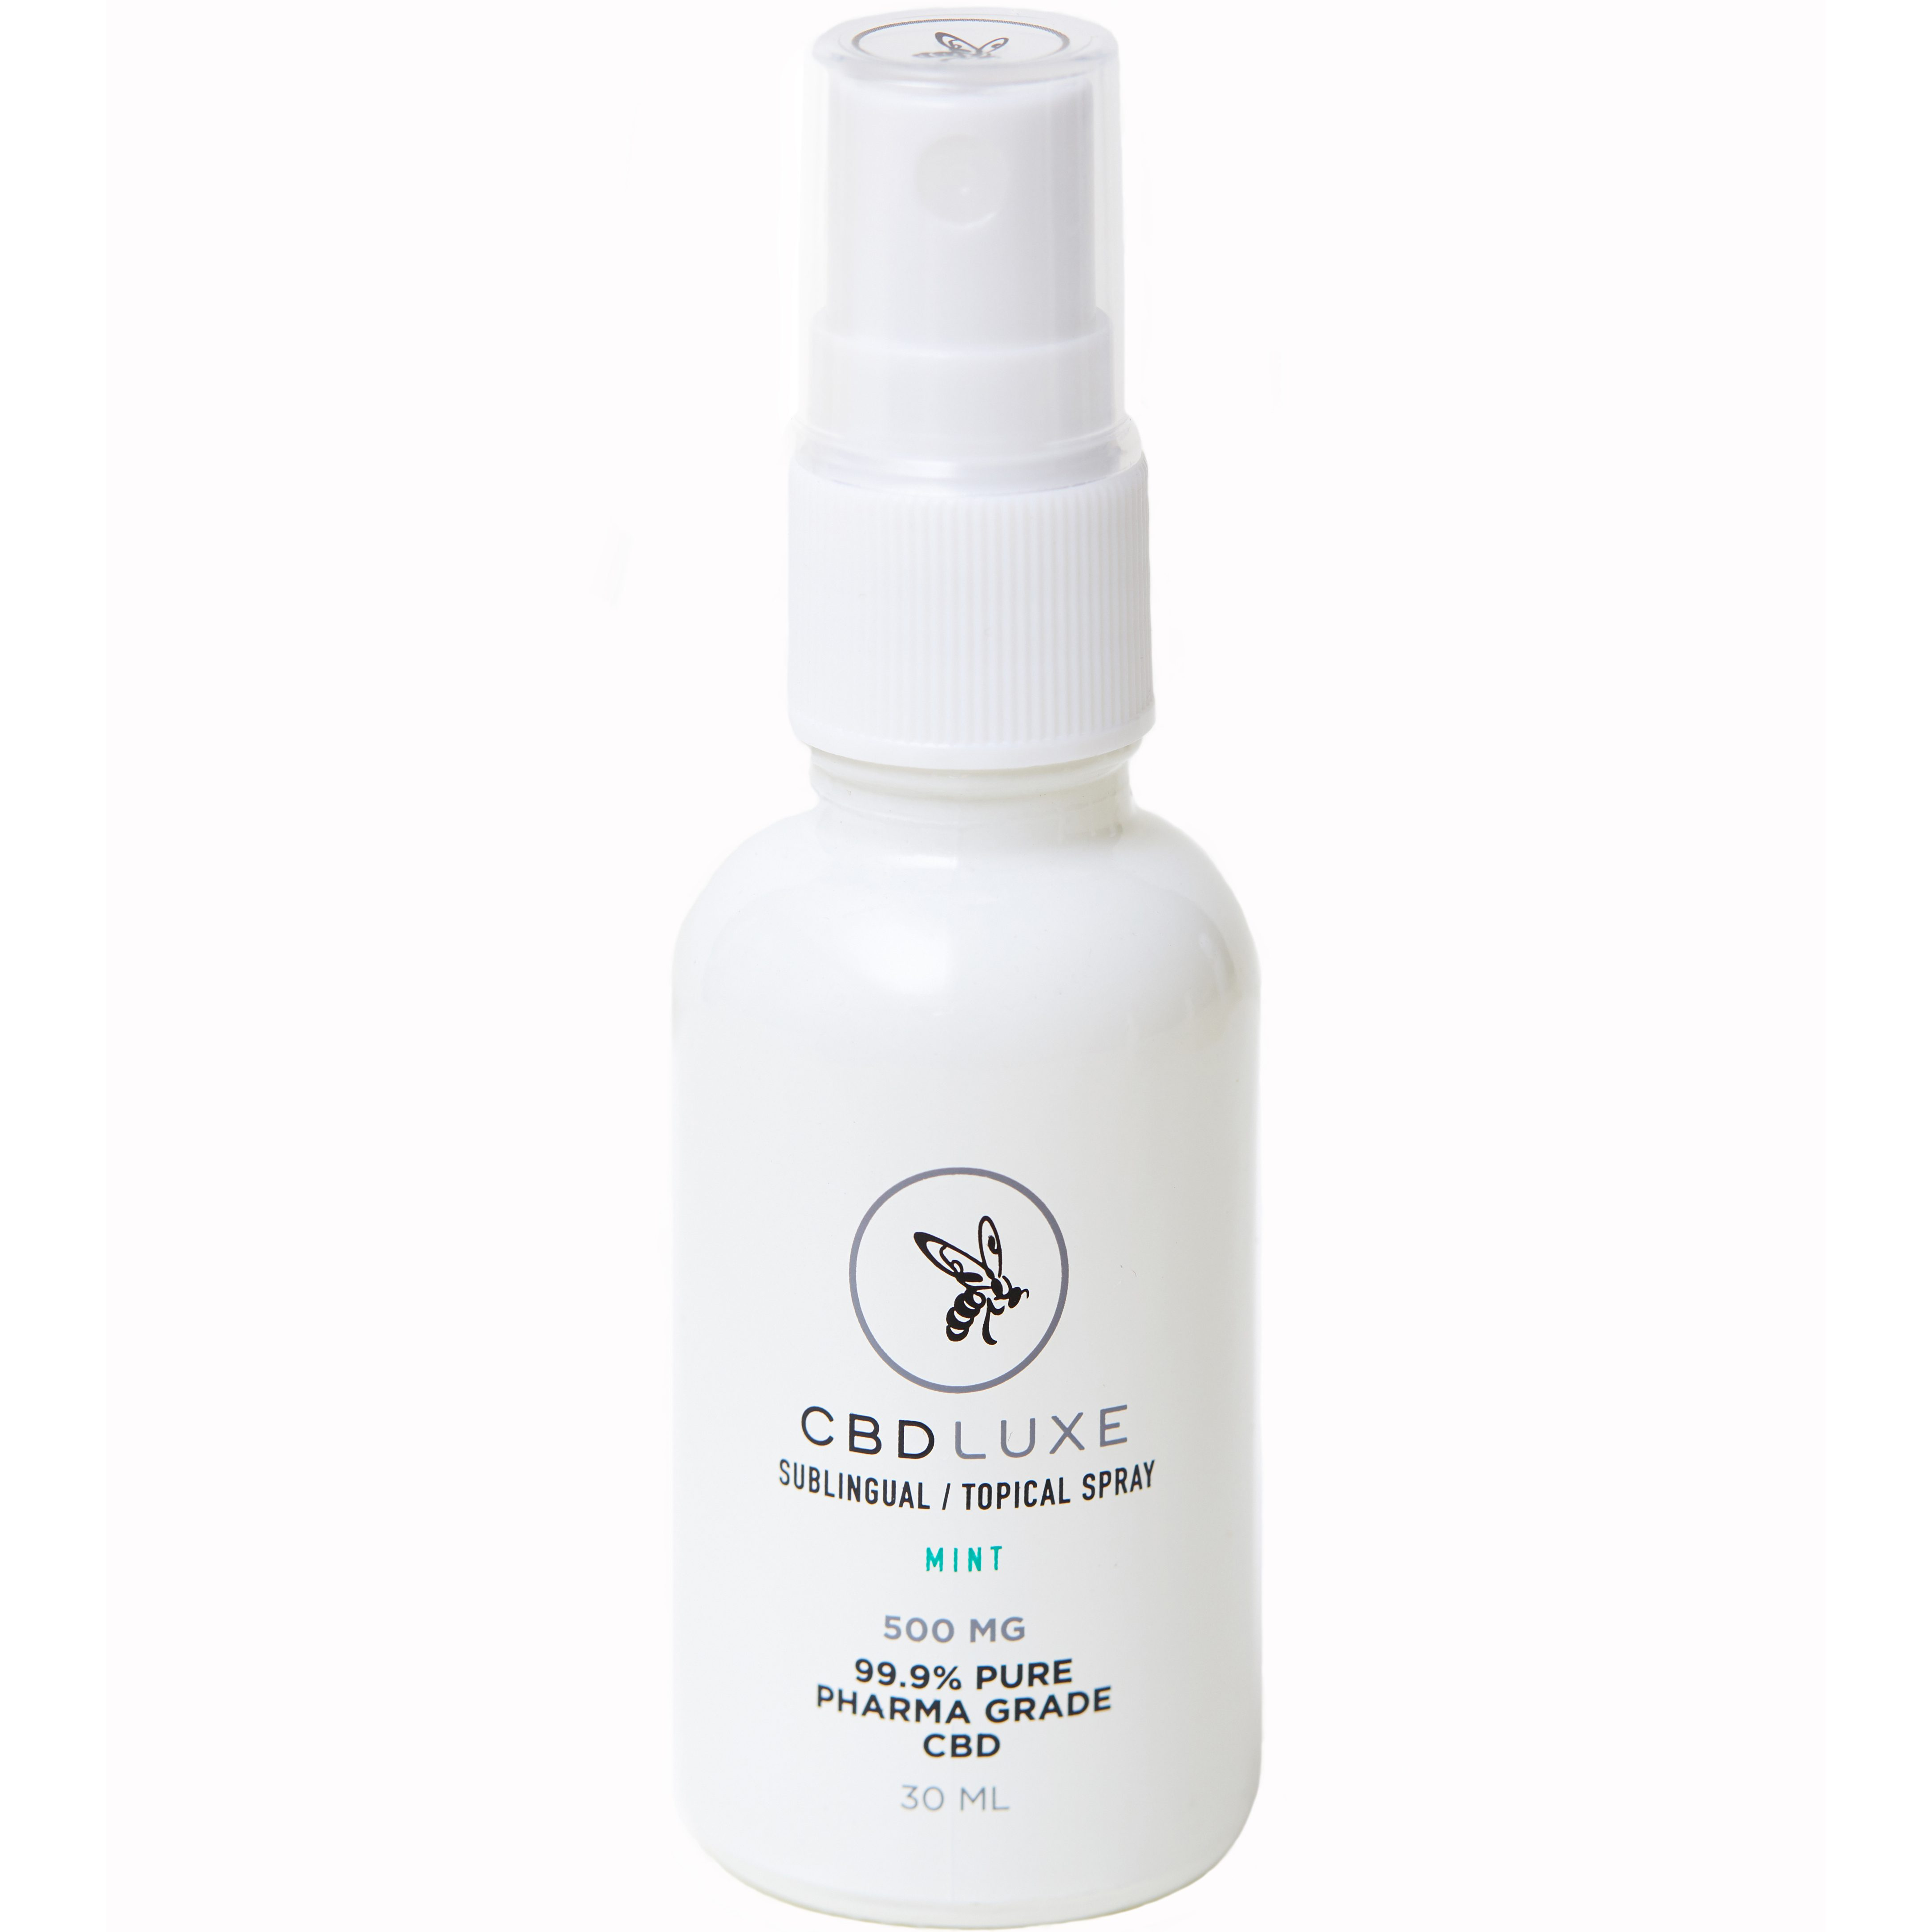 cbd luxe spray mint 500 mg